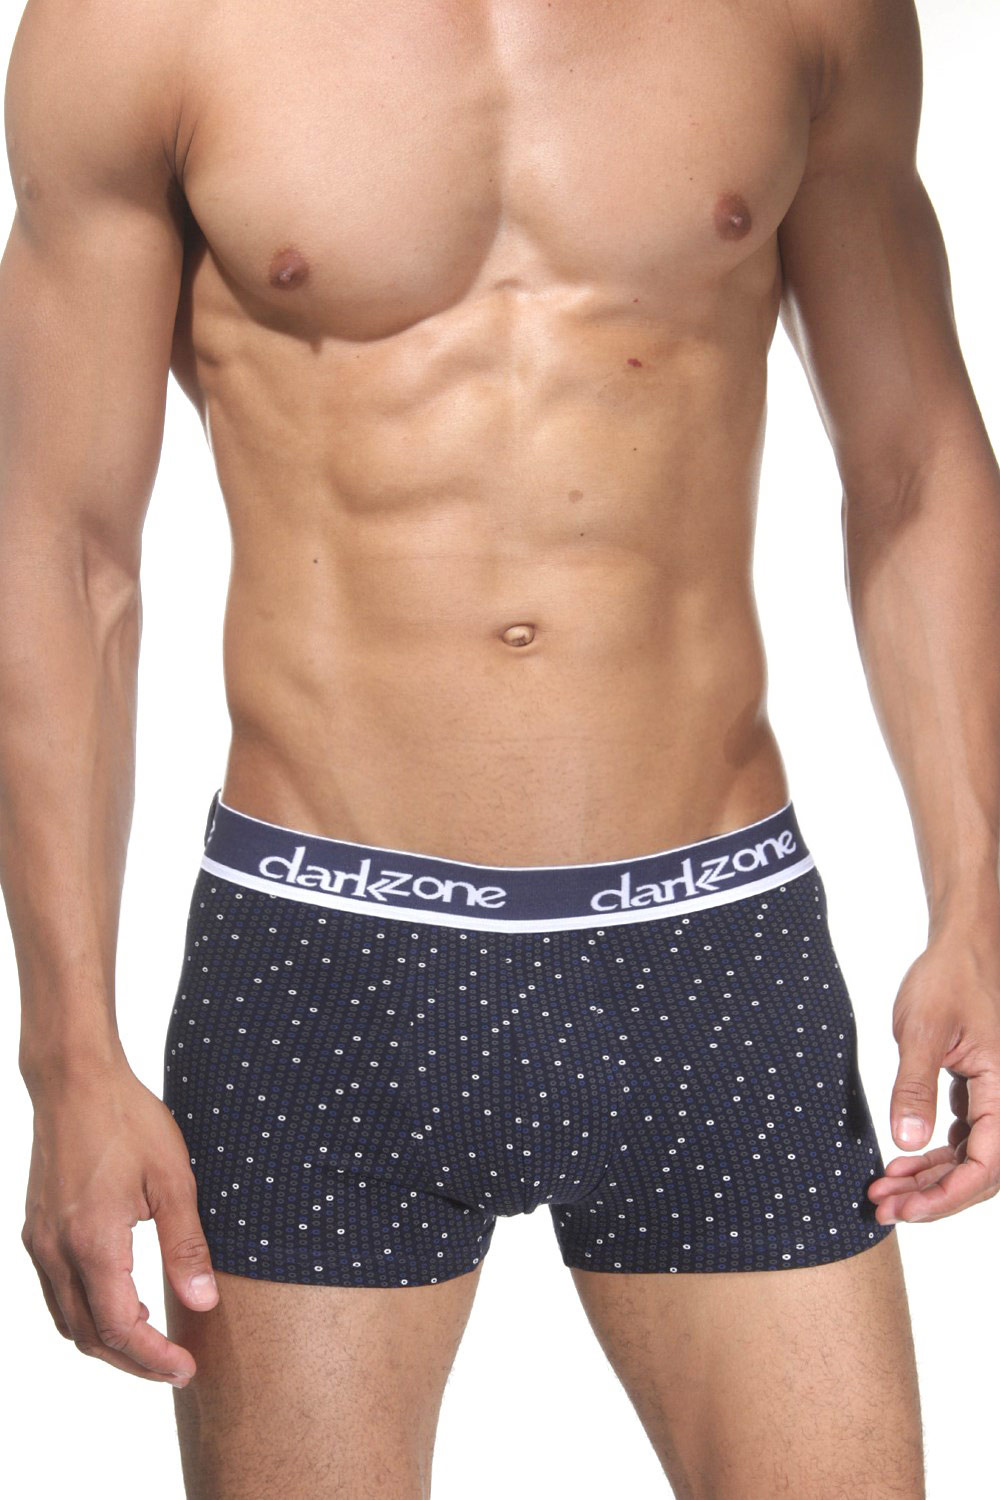 DARKZONE CLASSIC 2-Pack trunks at oboy.com